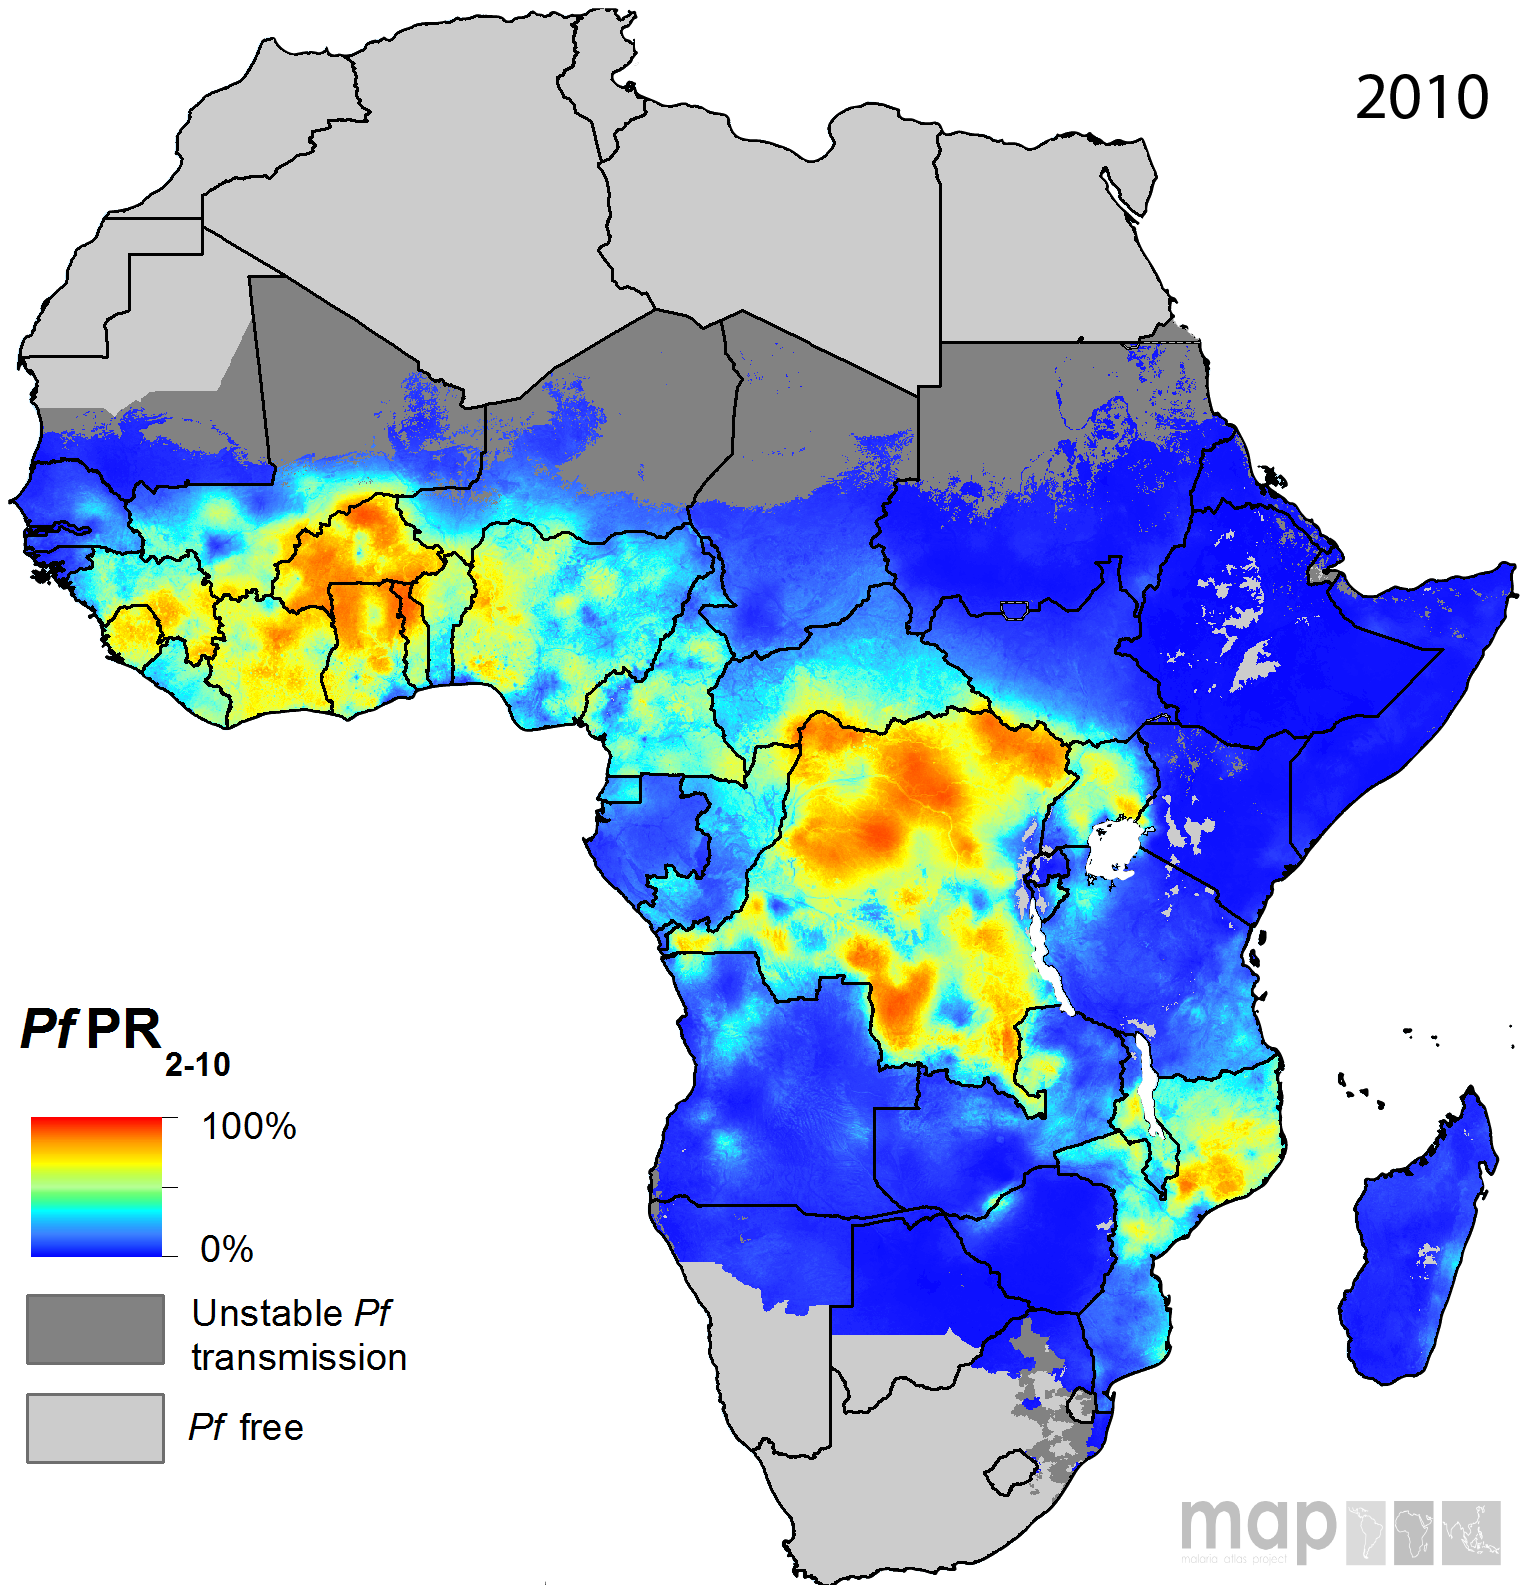 Map Of Africa 2010.Africa Malaria Prevalence 2010 Map Populationdata Net